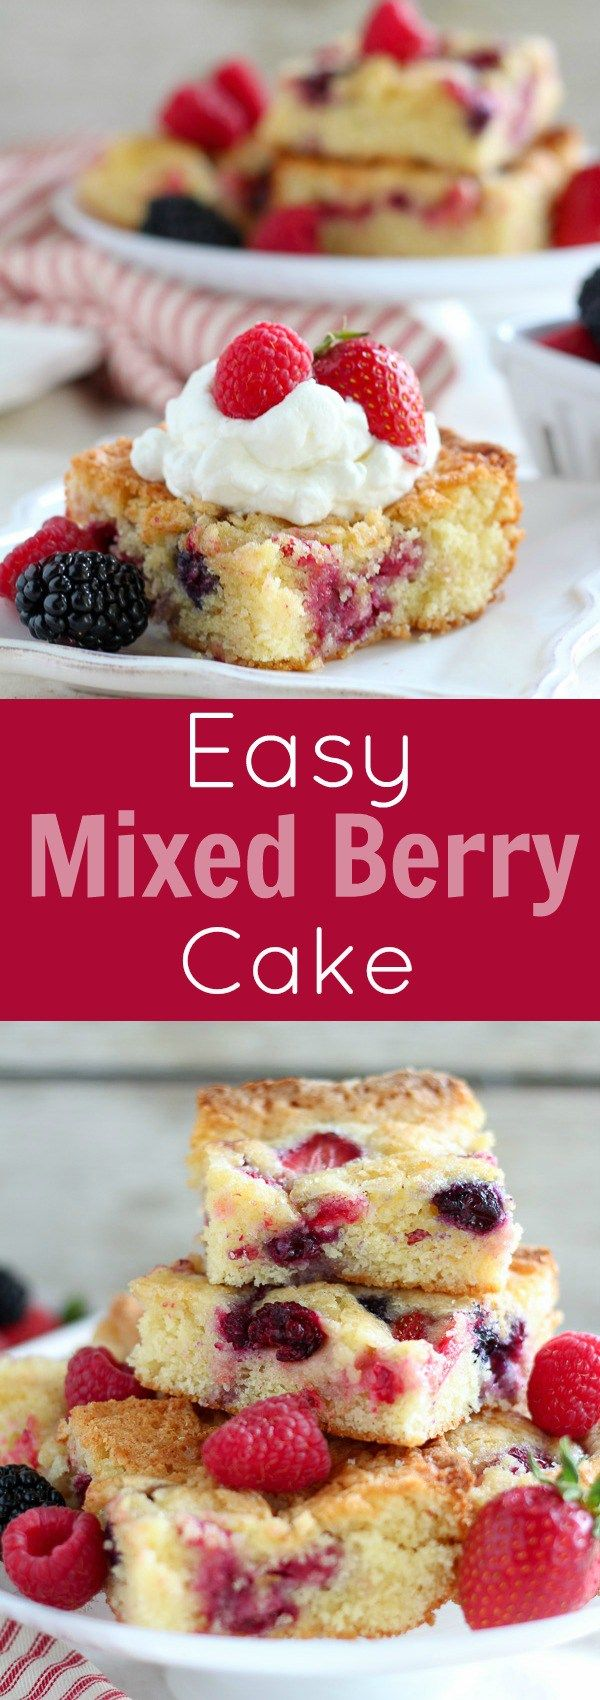 Easy Mixed Berry Cake - A tender vanilla cake flavored with a touch of almond extract and filled with fresh berries. This will be your go-to summer dessert! (Mix Berry Crisp)